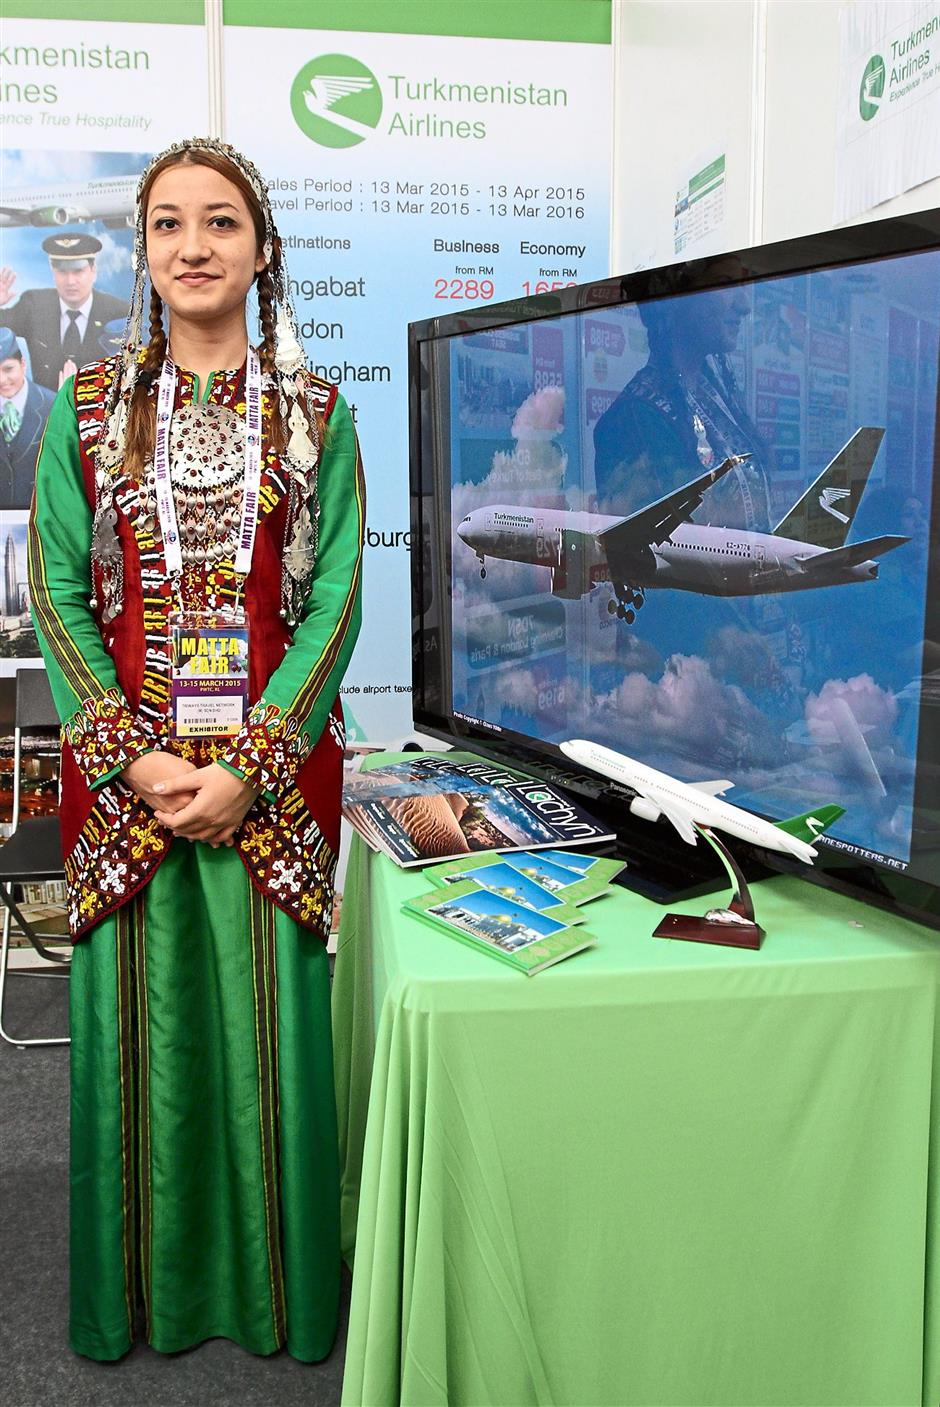 Glimpse of their culture: A sales promoter wearing the traditional Turkmenistan costume.